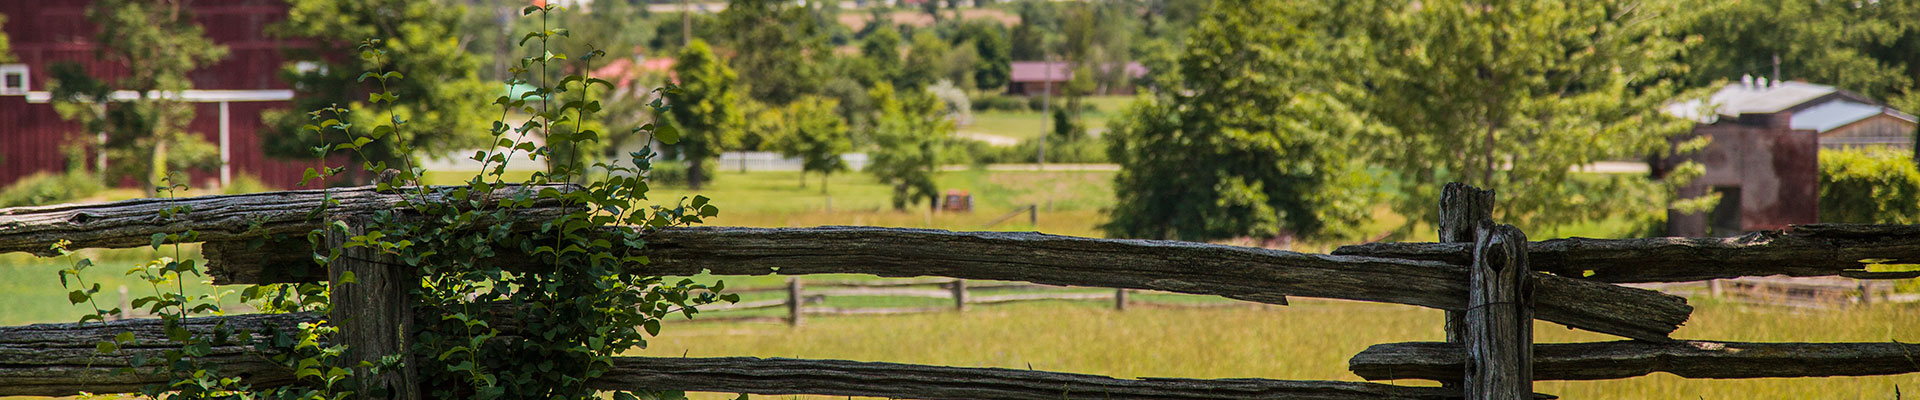 Photo-Farm-Fence-View-2014-06-26-Country-Heritage-Park-056.jpg